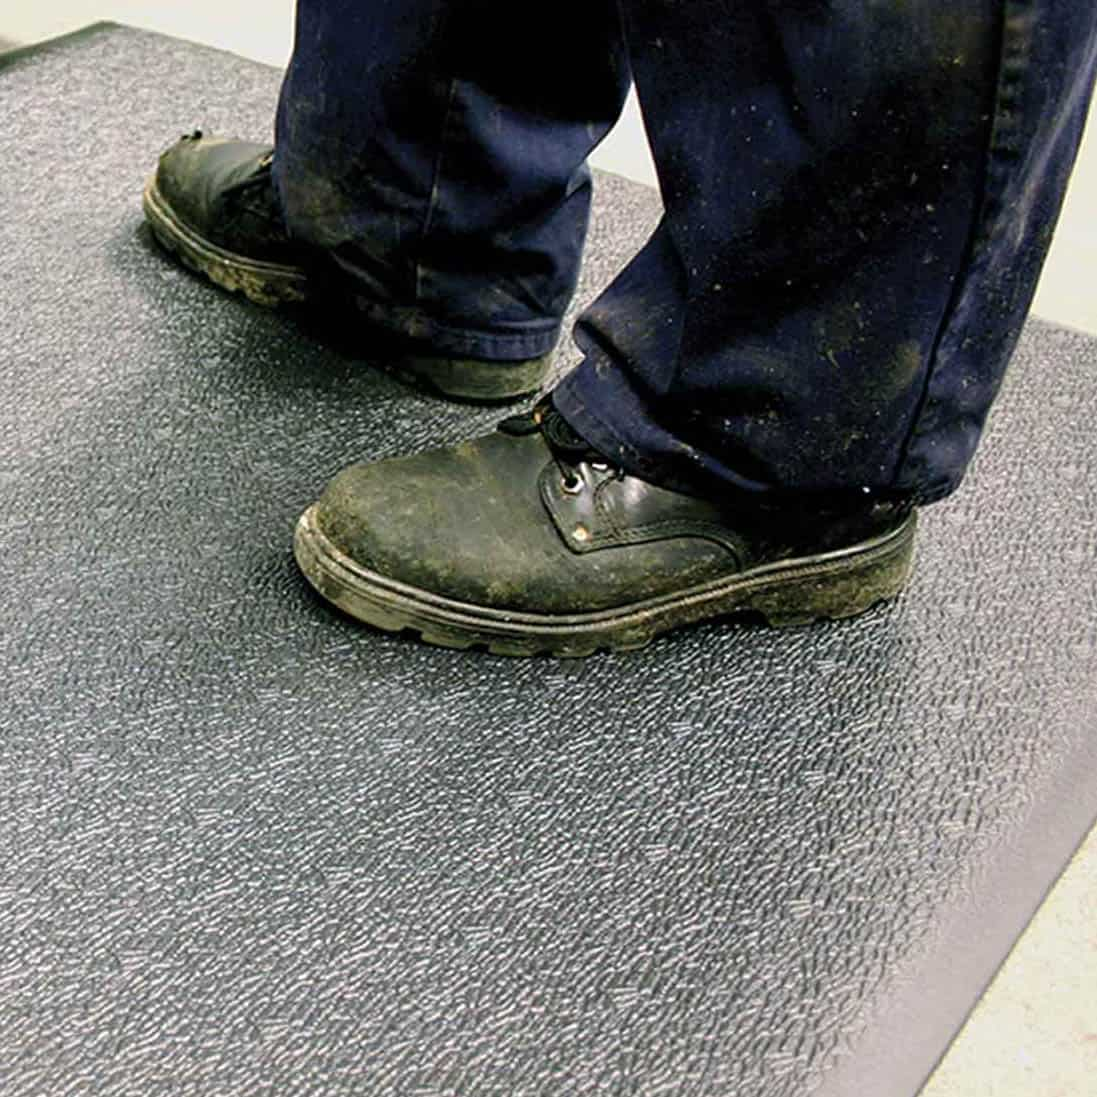 Orthomat Standard Anti-Fatigue Matting